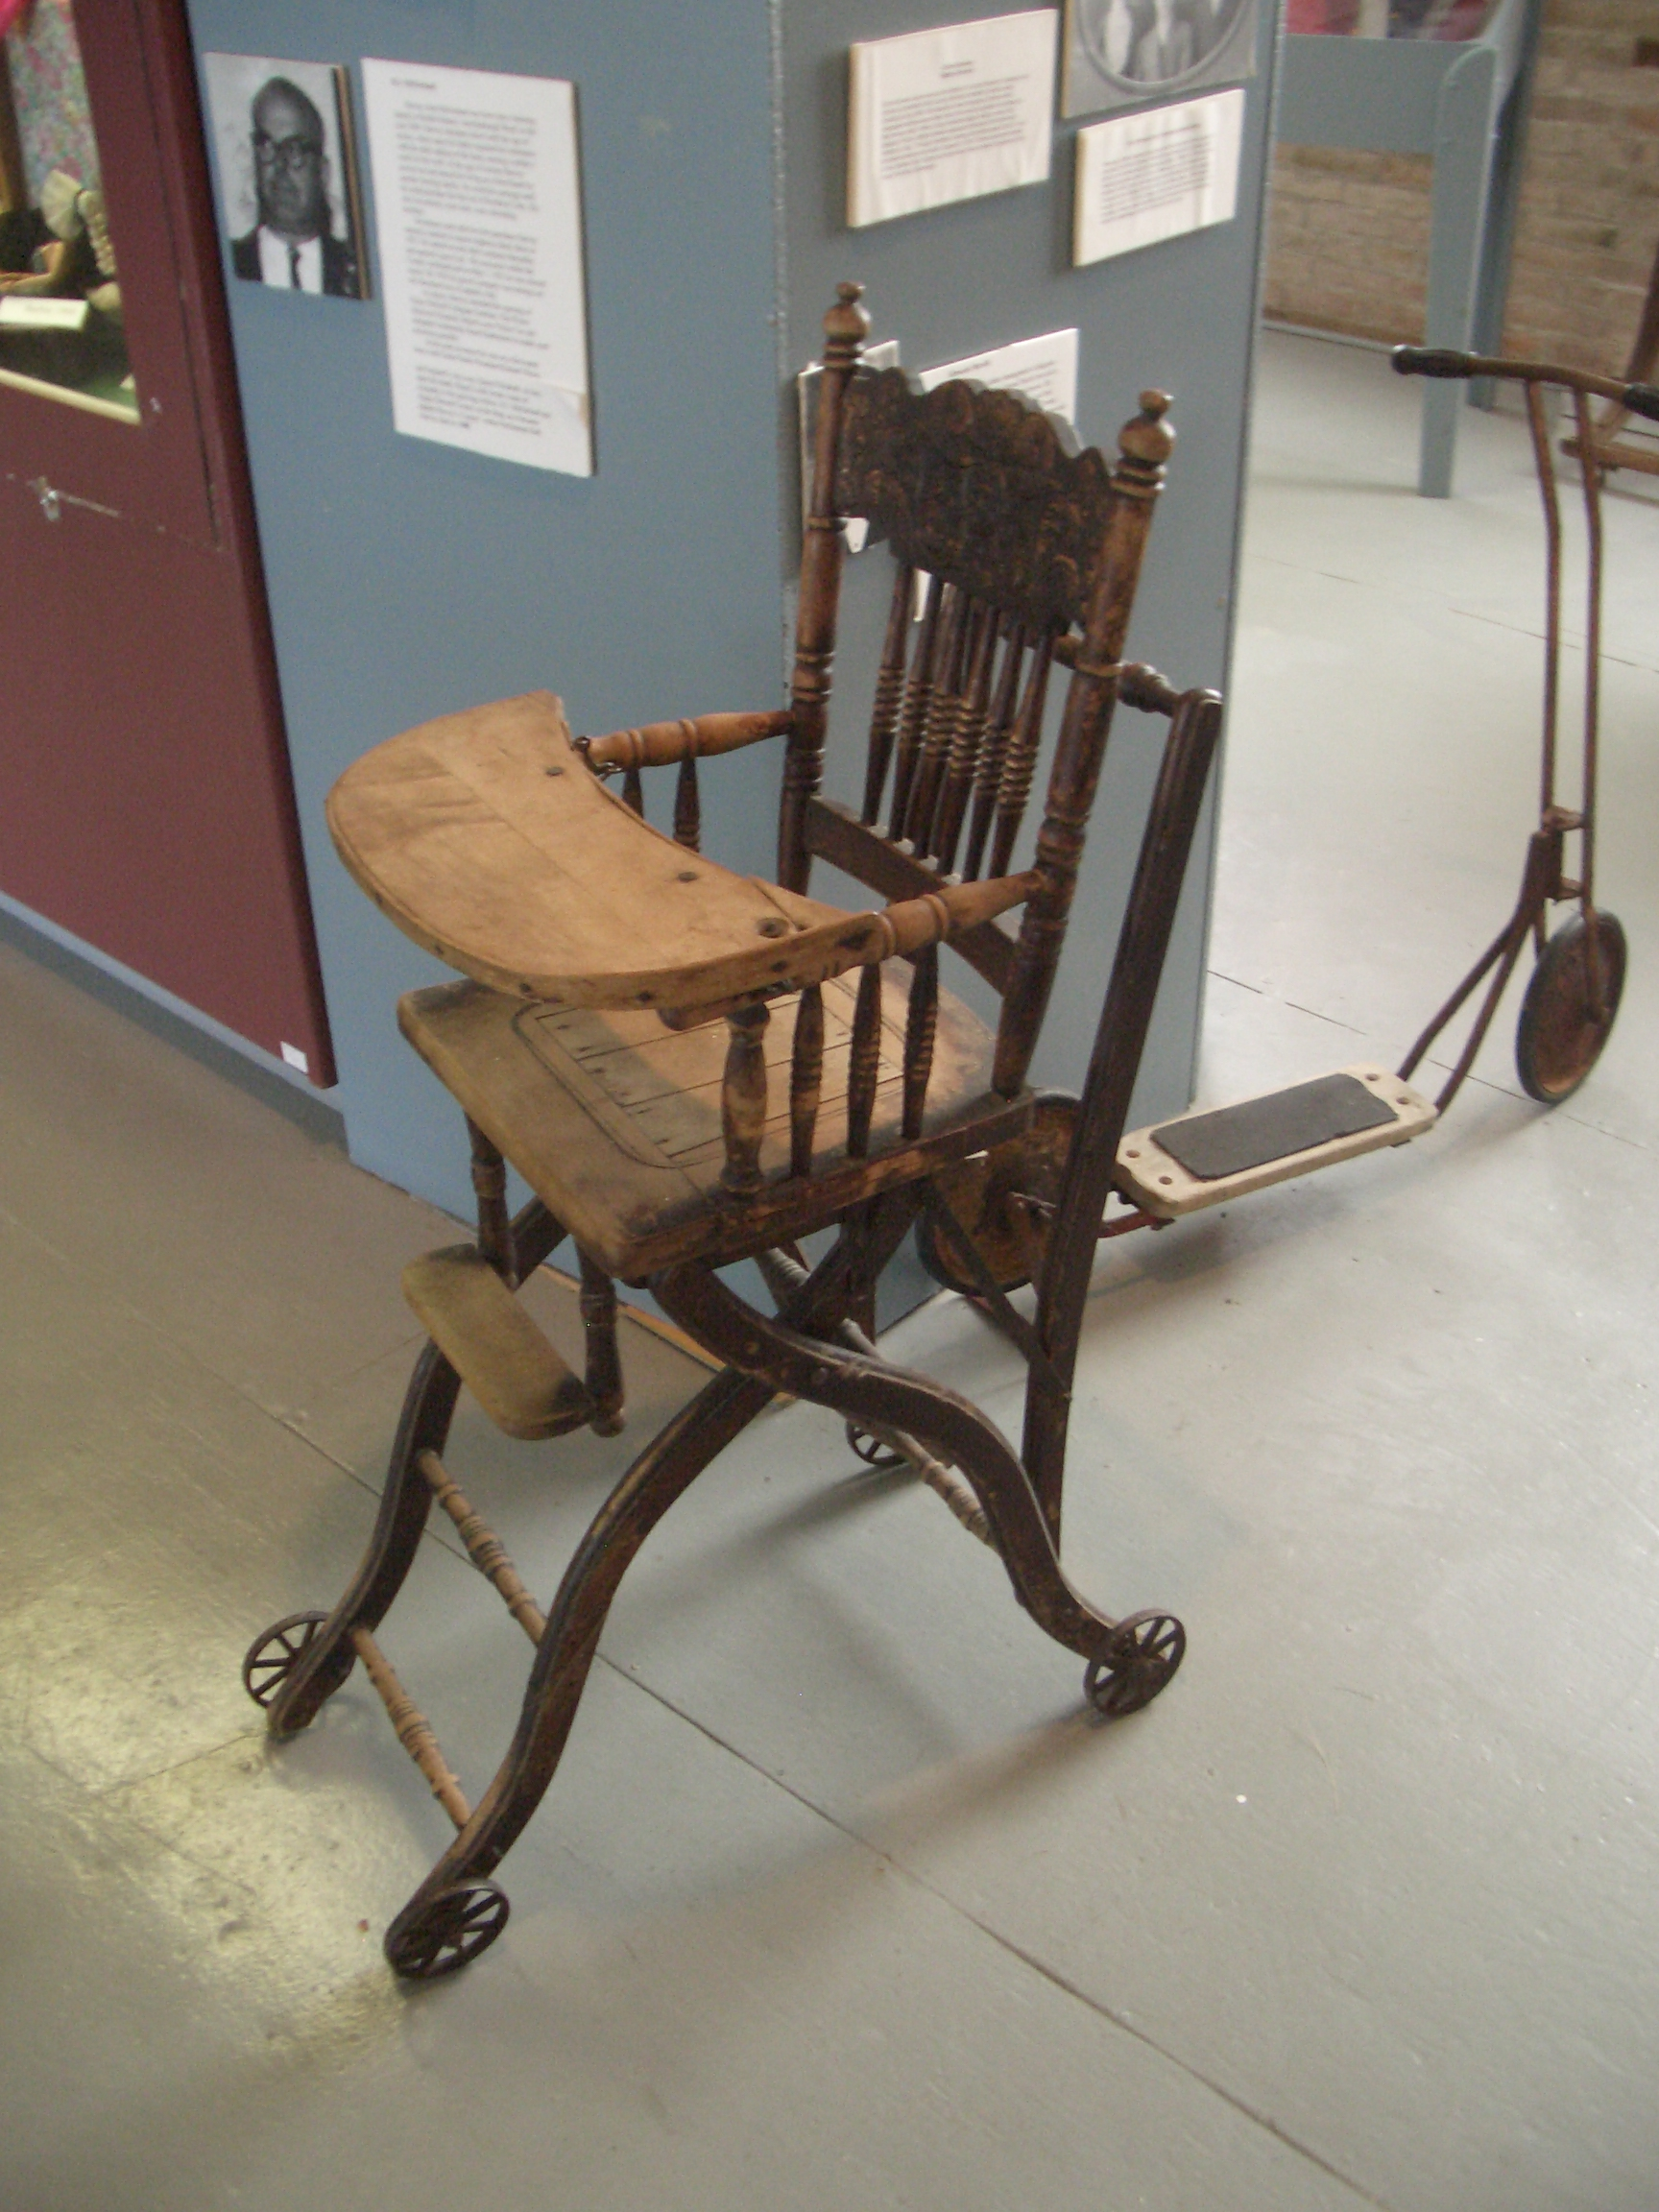 Superb img of Antique high chair [image 1728x2304 pixels] with #826849 color and 1728x2304 pixels